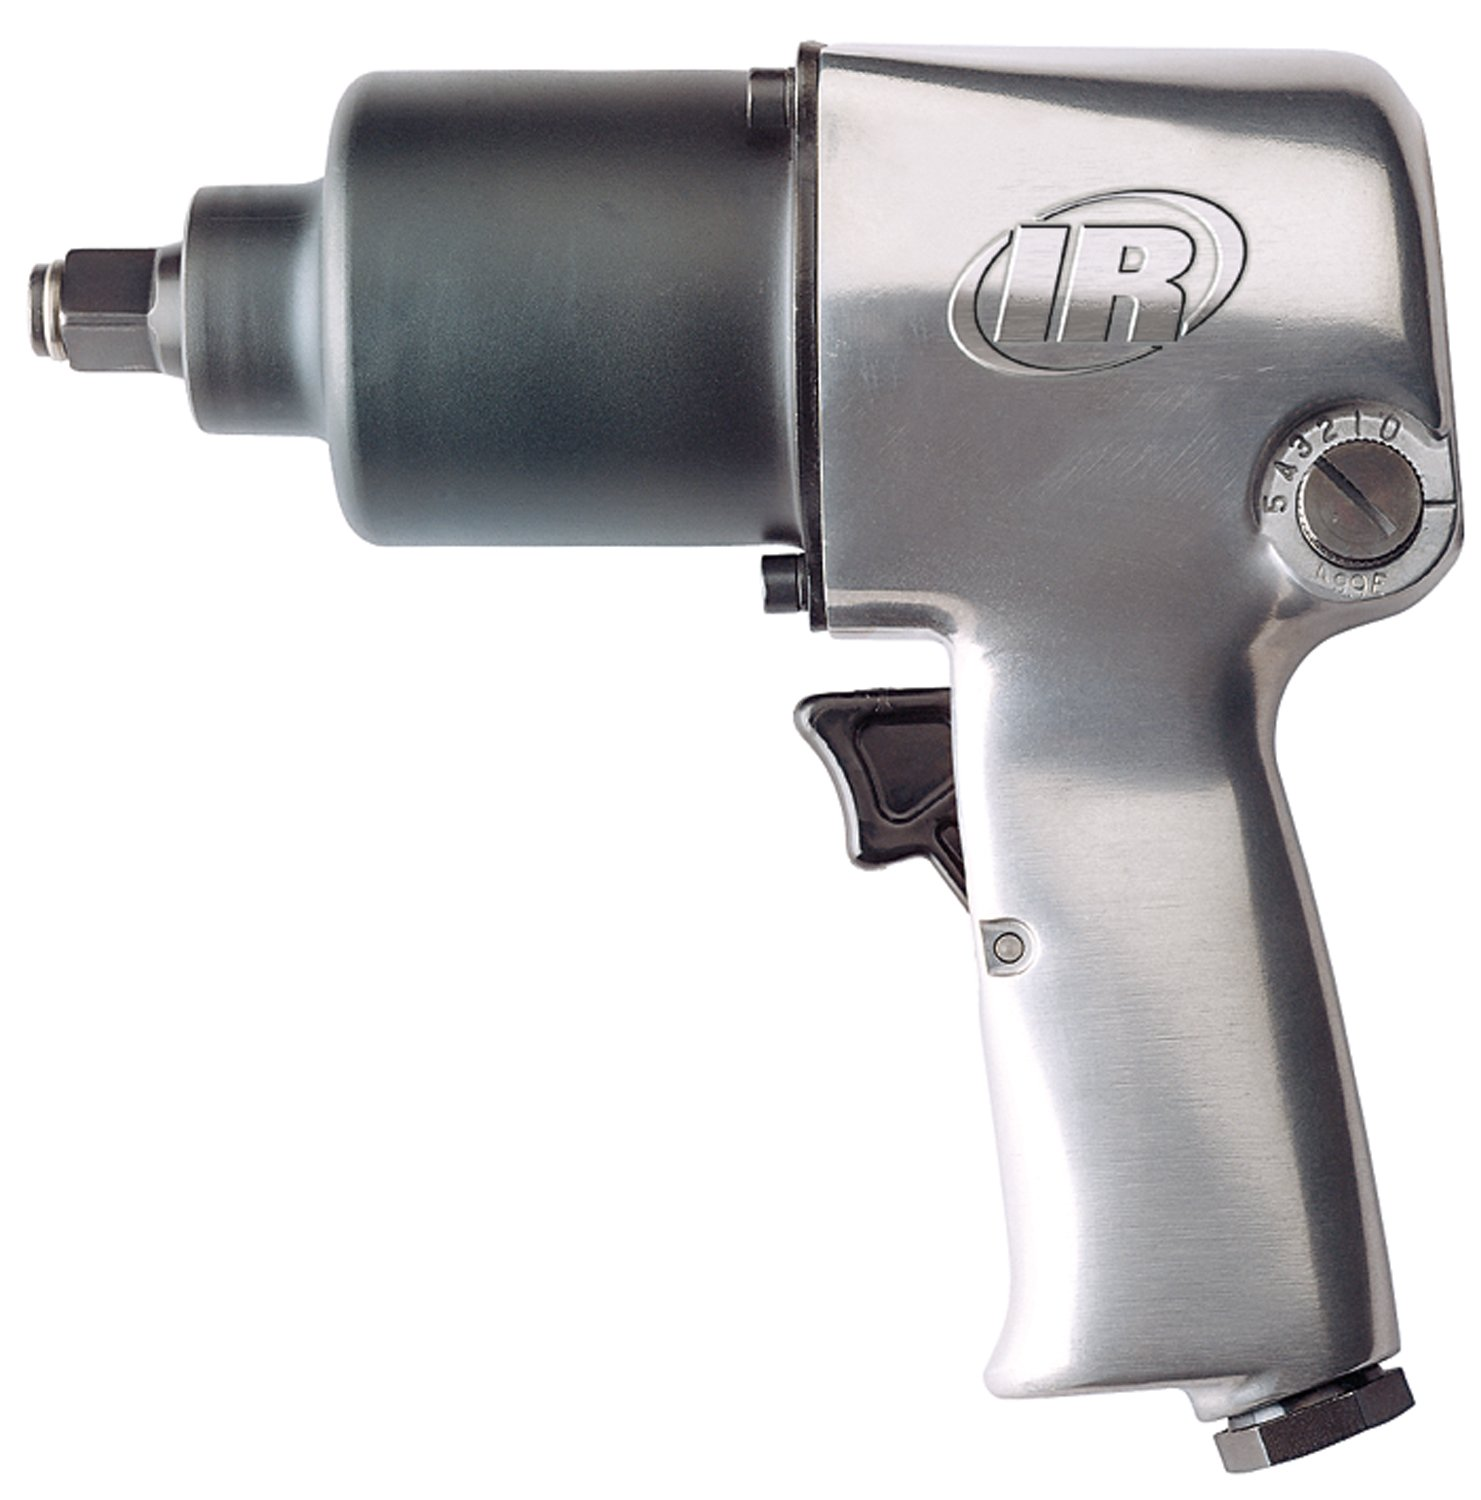 Ingersoll-Rand 231C Super-Duty Air Impact Wrench, 1/2 Inch